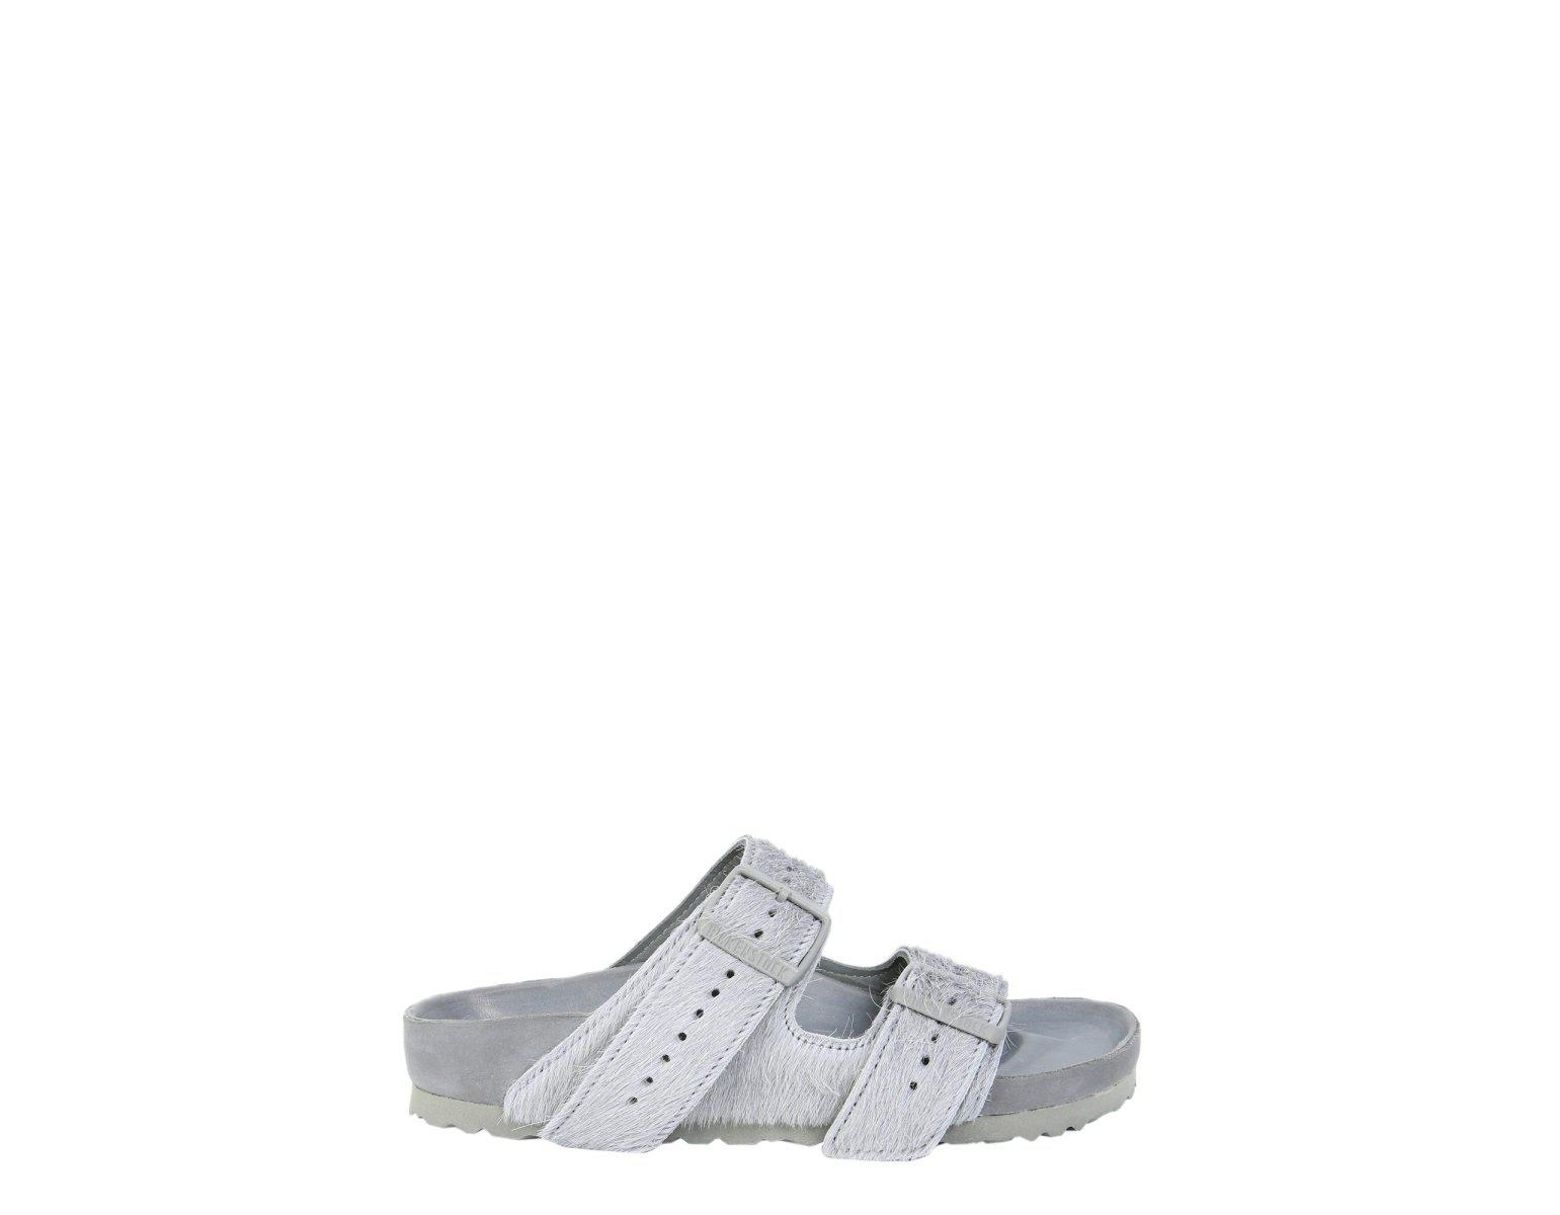 5f78718e7f Rick Owens X Birkenstock Arizona Sandals in Gray - Save 47% - Lyst